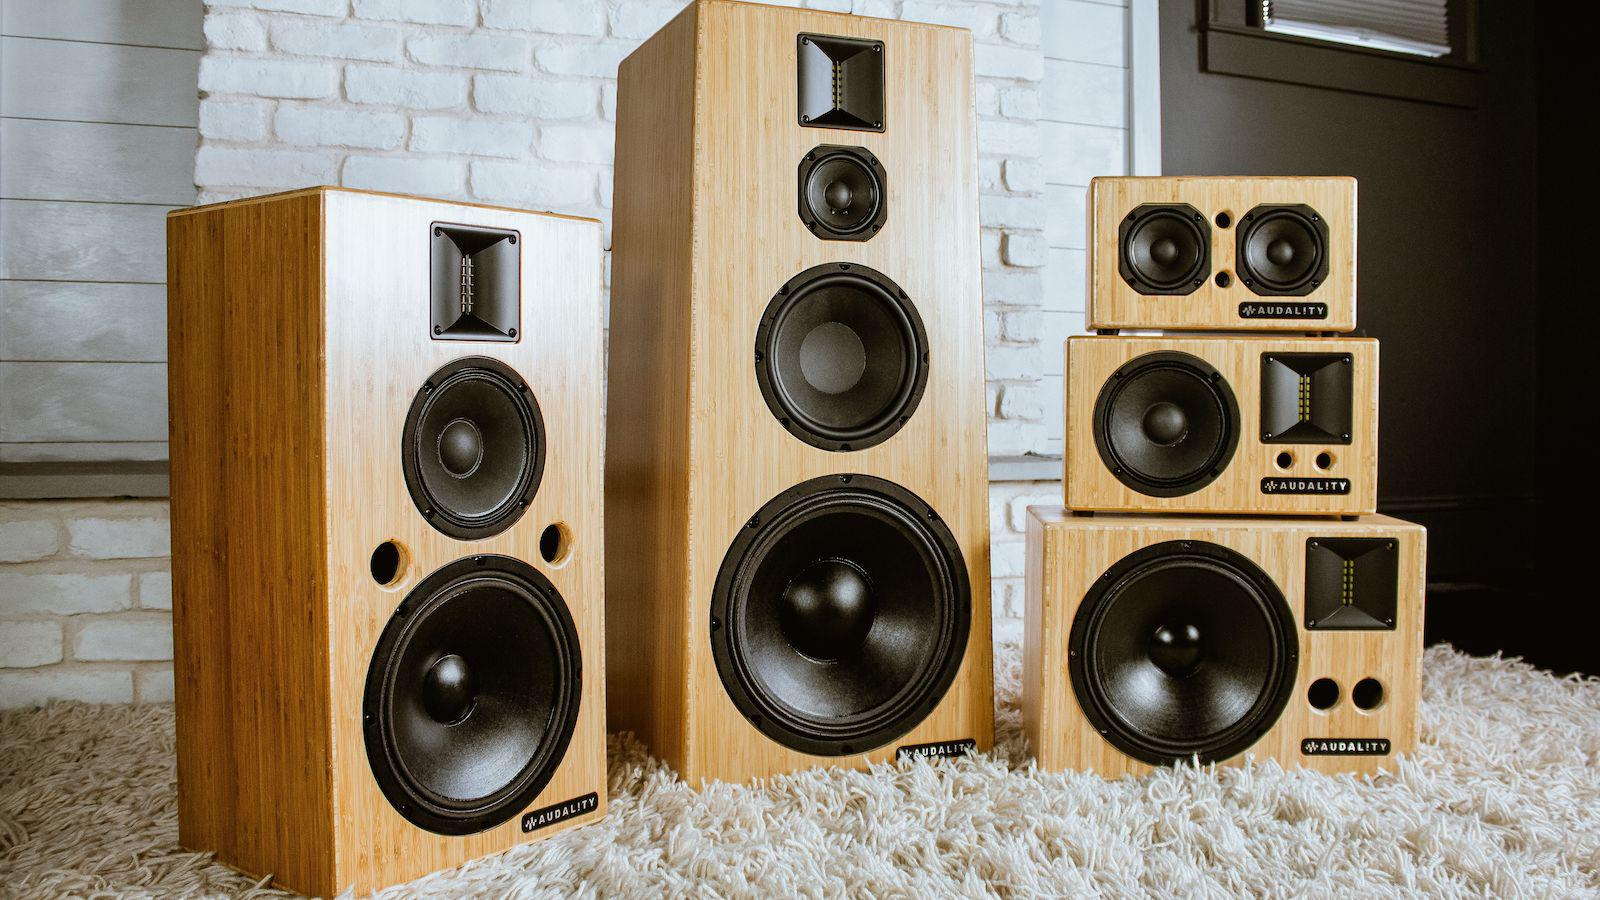 Audality S Series wireless speaker systems